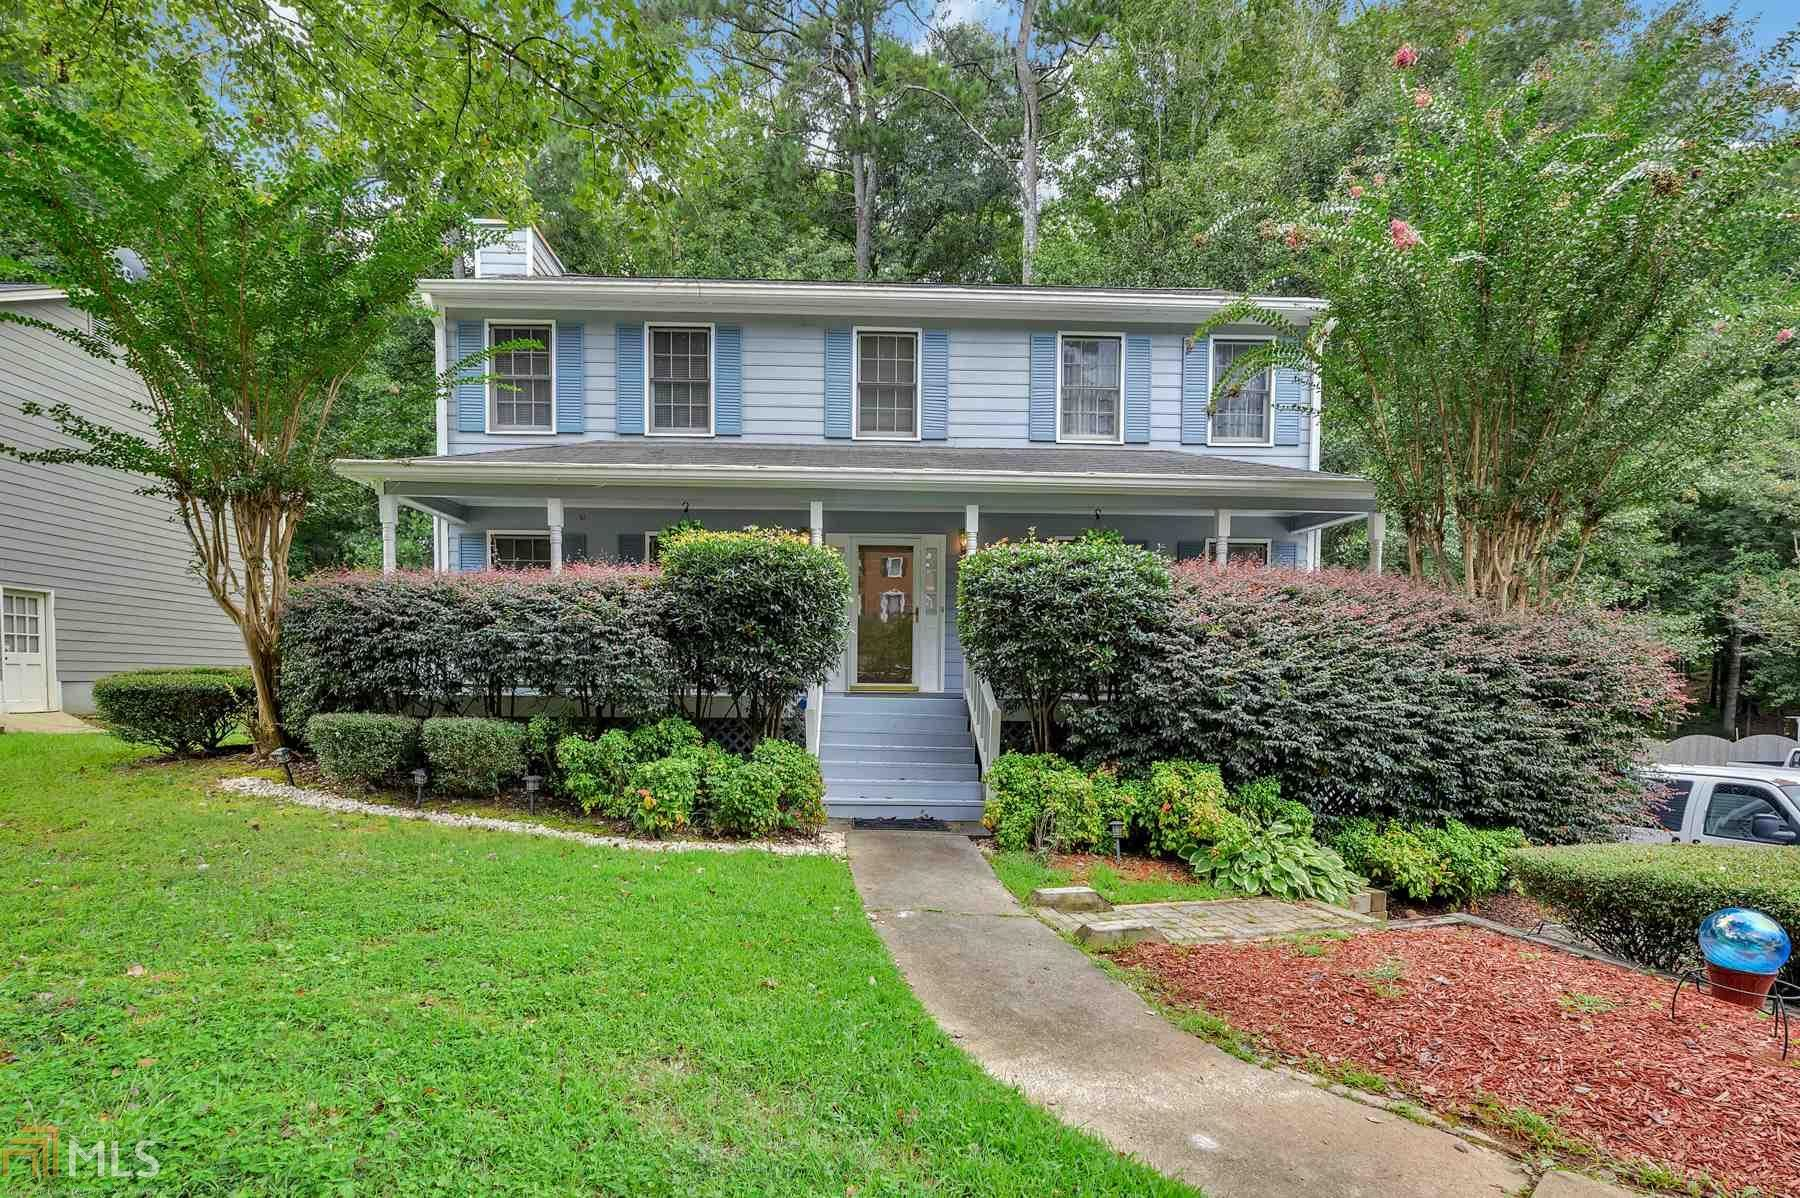 1576 Milford Creek Ln, Marietta, GA 30008 - MLS#: 8839737